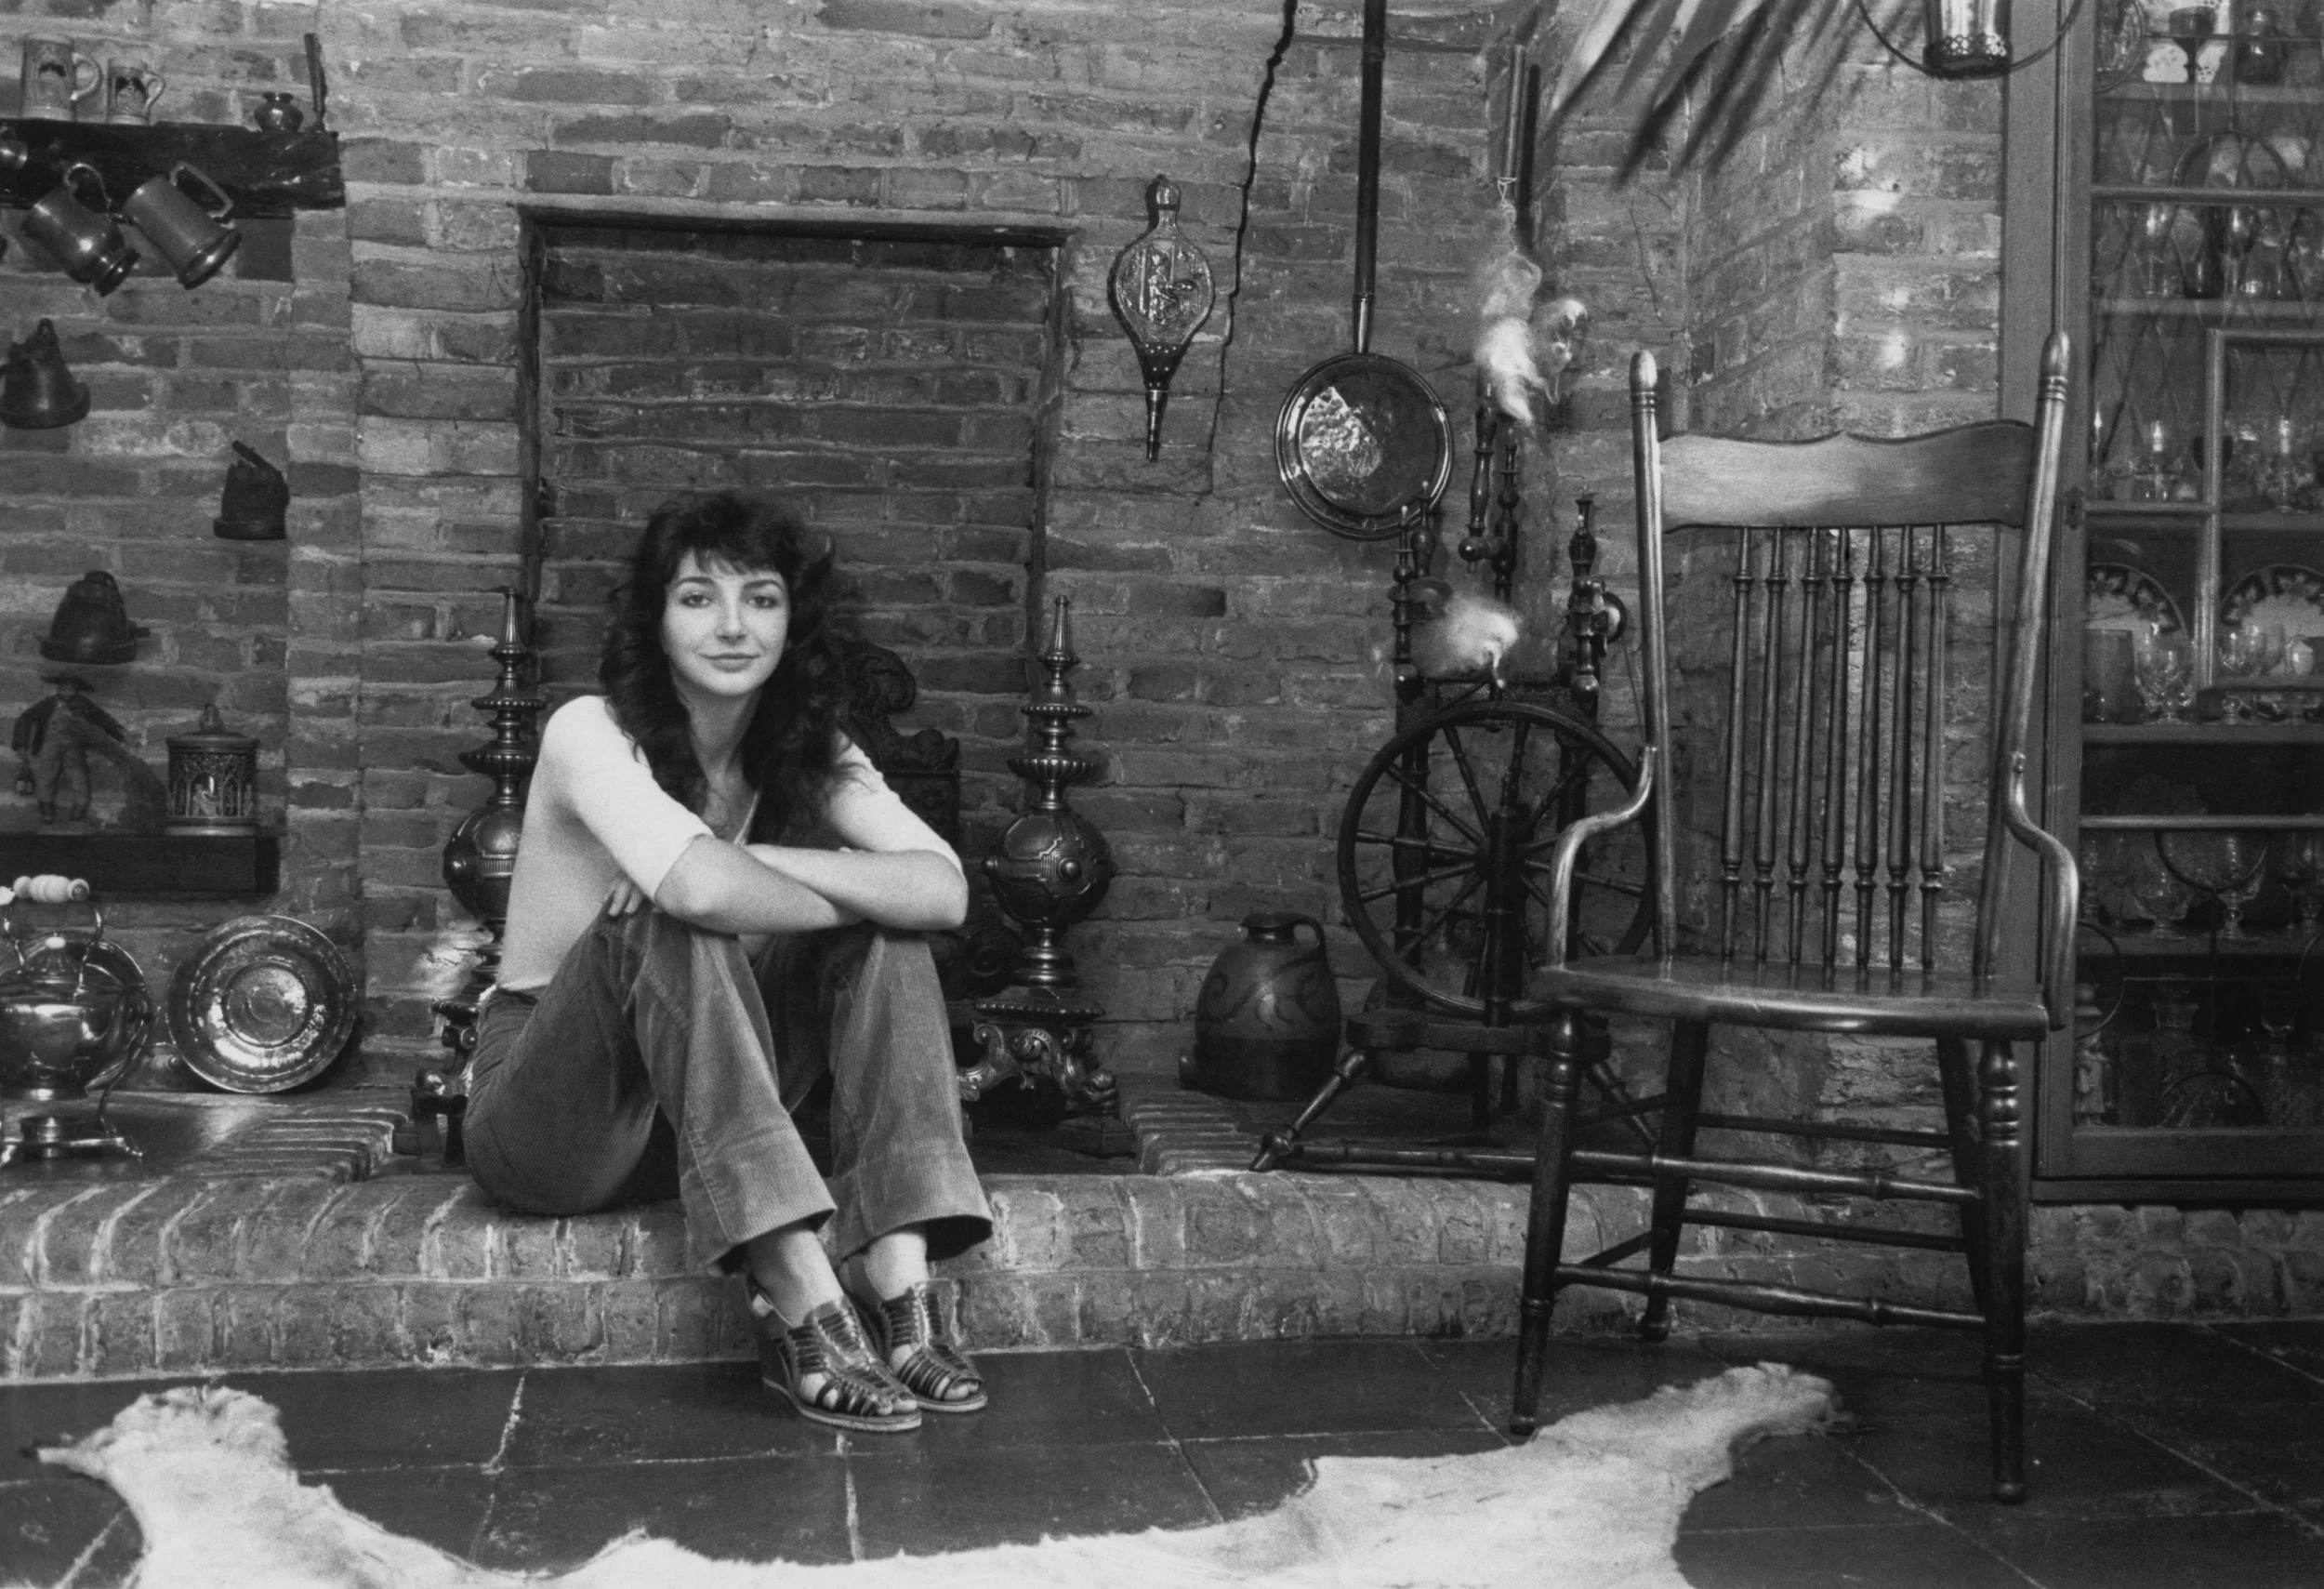 Kate Bush poses in her home in September 1978, the year her hit song 'Wuthering Heights' was released